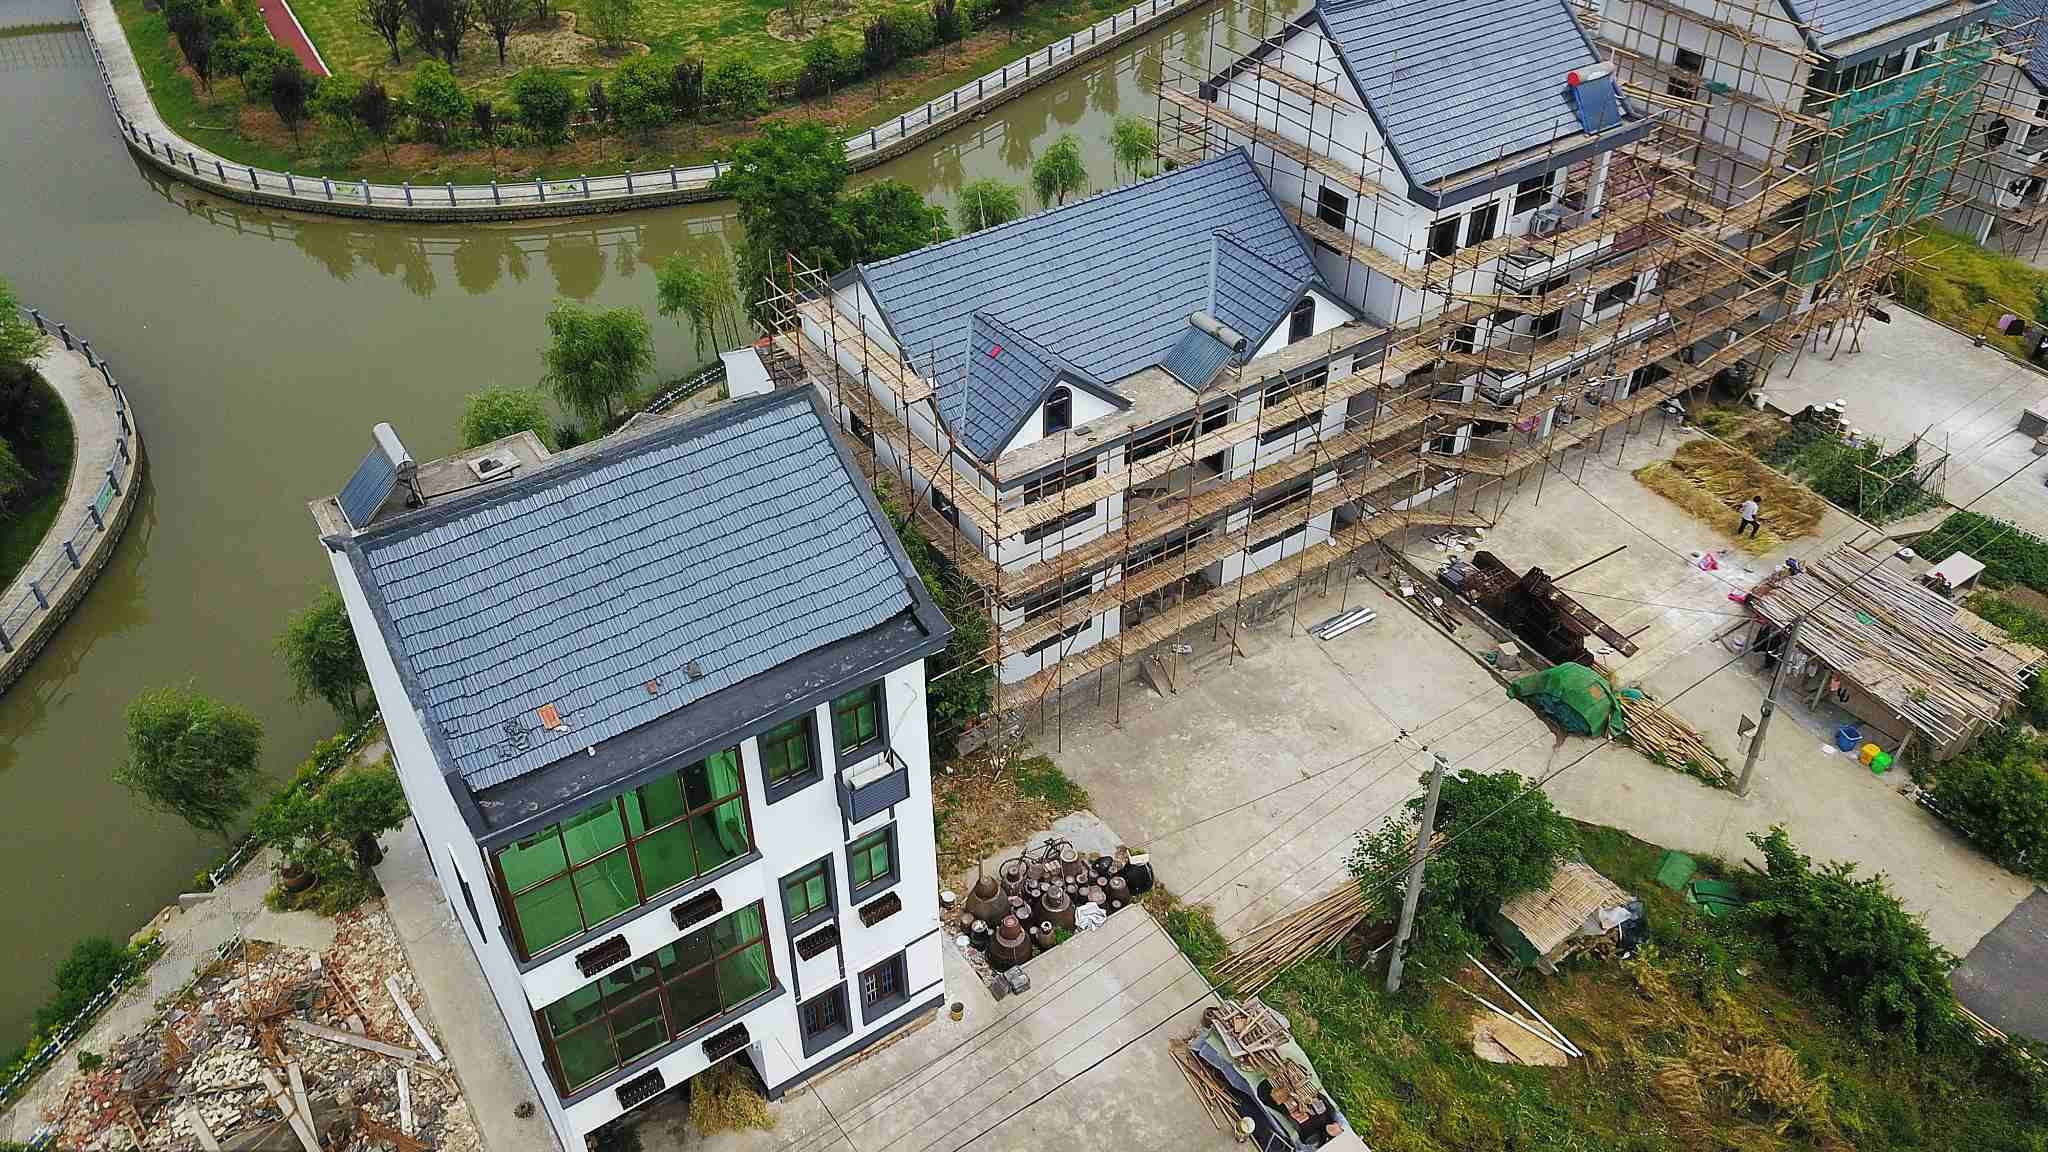 Shanghai brings in 3D tech to turn a village into an innovation hub